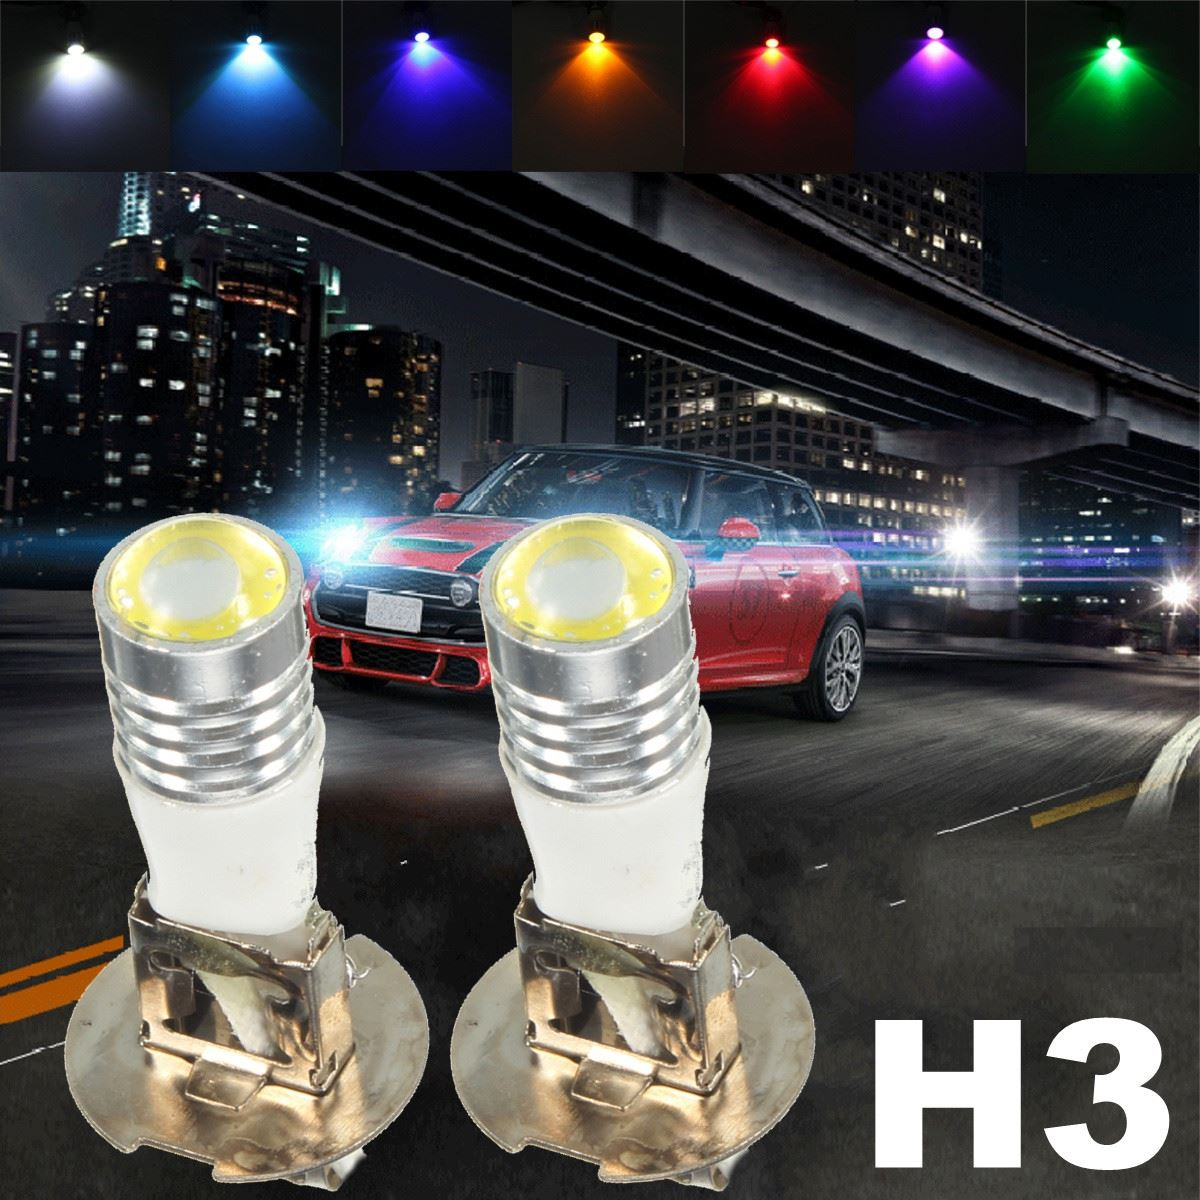 H3 COB LED Car Auto DRL Driving Fog HeadLight Parking Light Lamp Bulb White Green Yellow Pink Red Blue Ice Blue DC12V car cob led h7 bulb fog light parking lamp bulbs driving foglight 7 5w drl 2pcs amber yellow white red ice blue